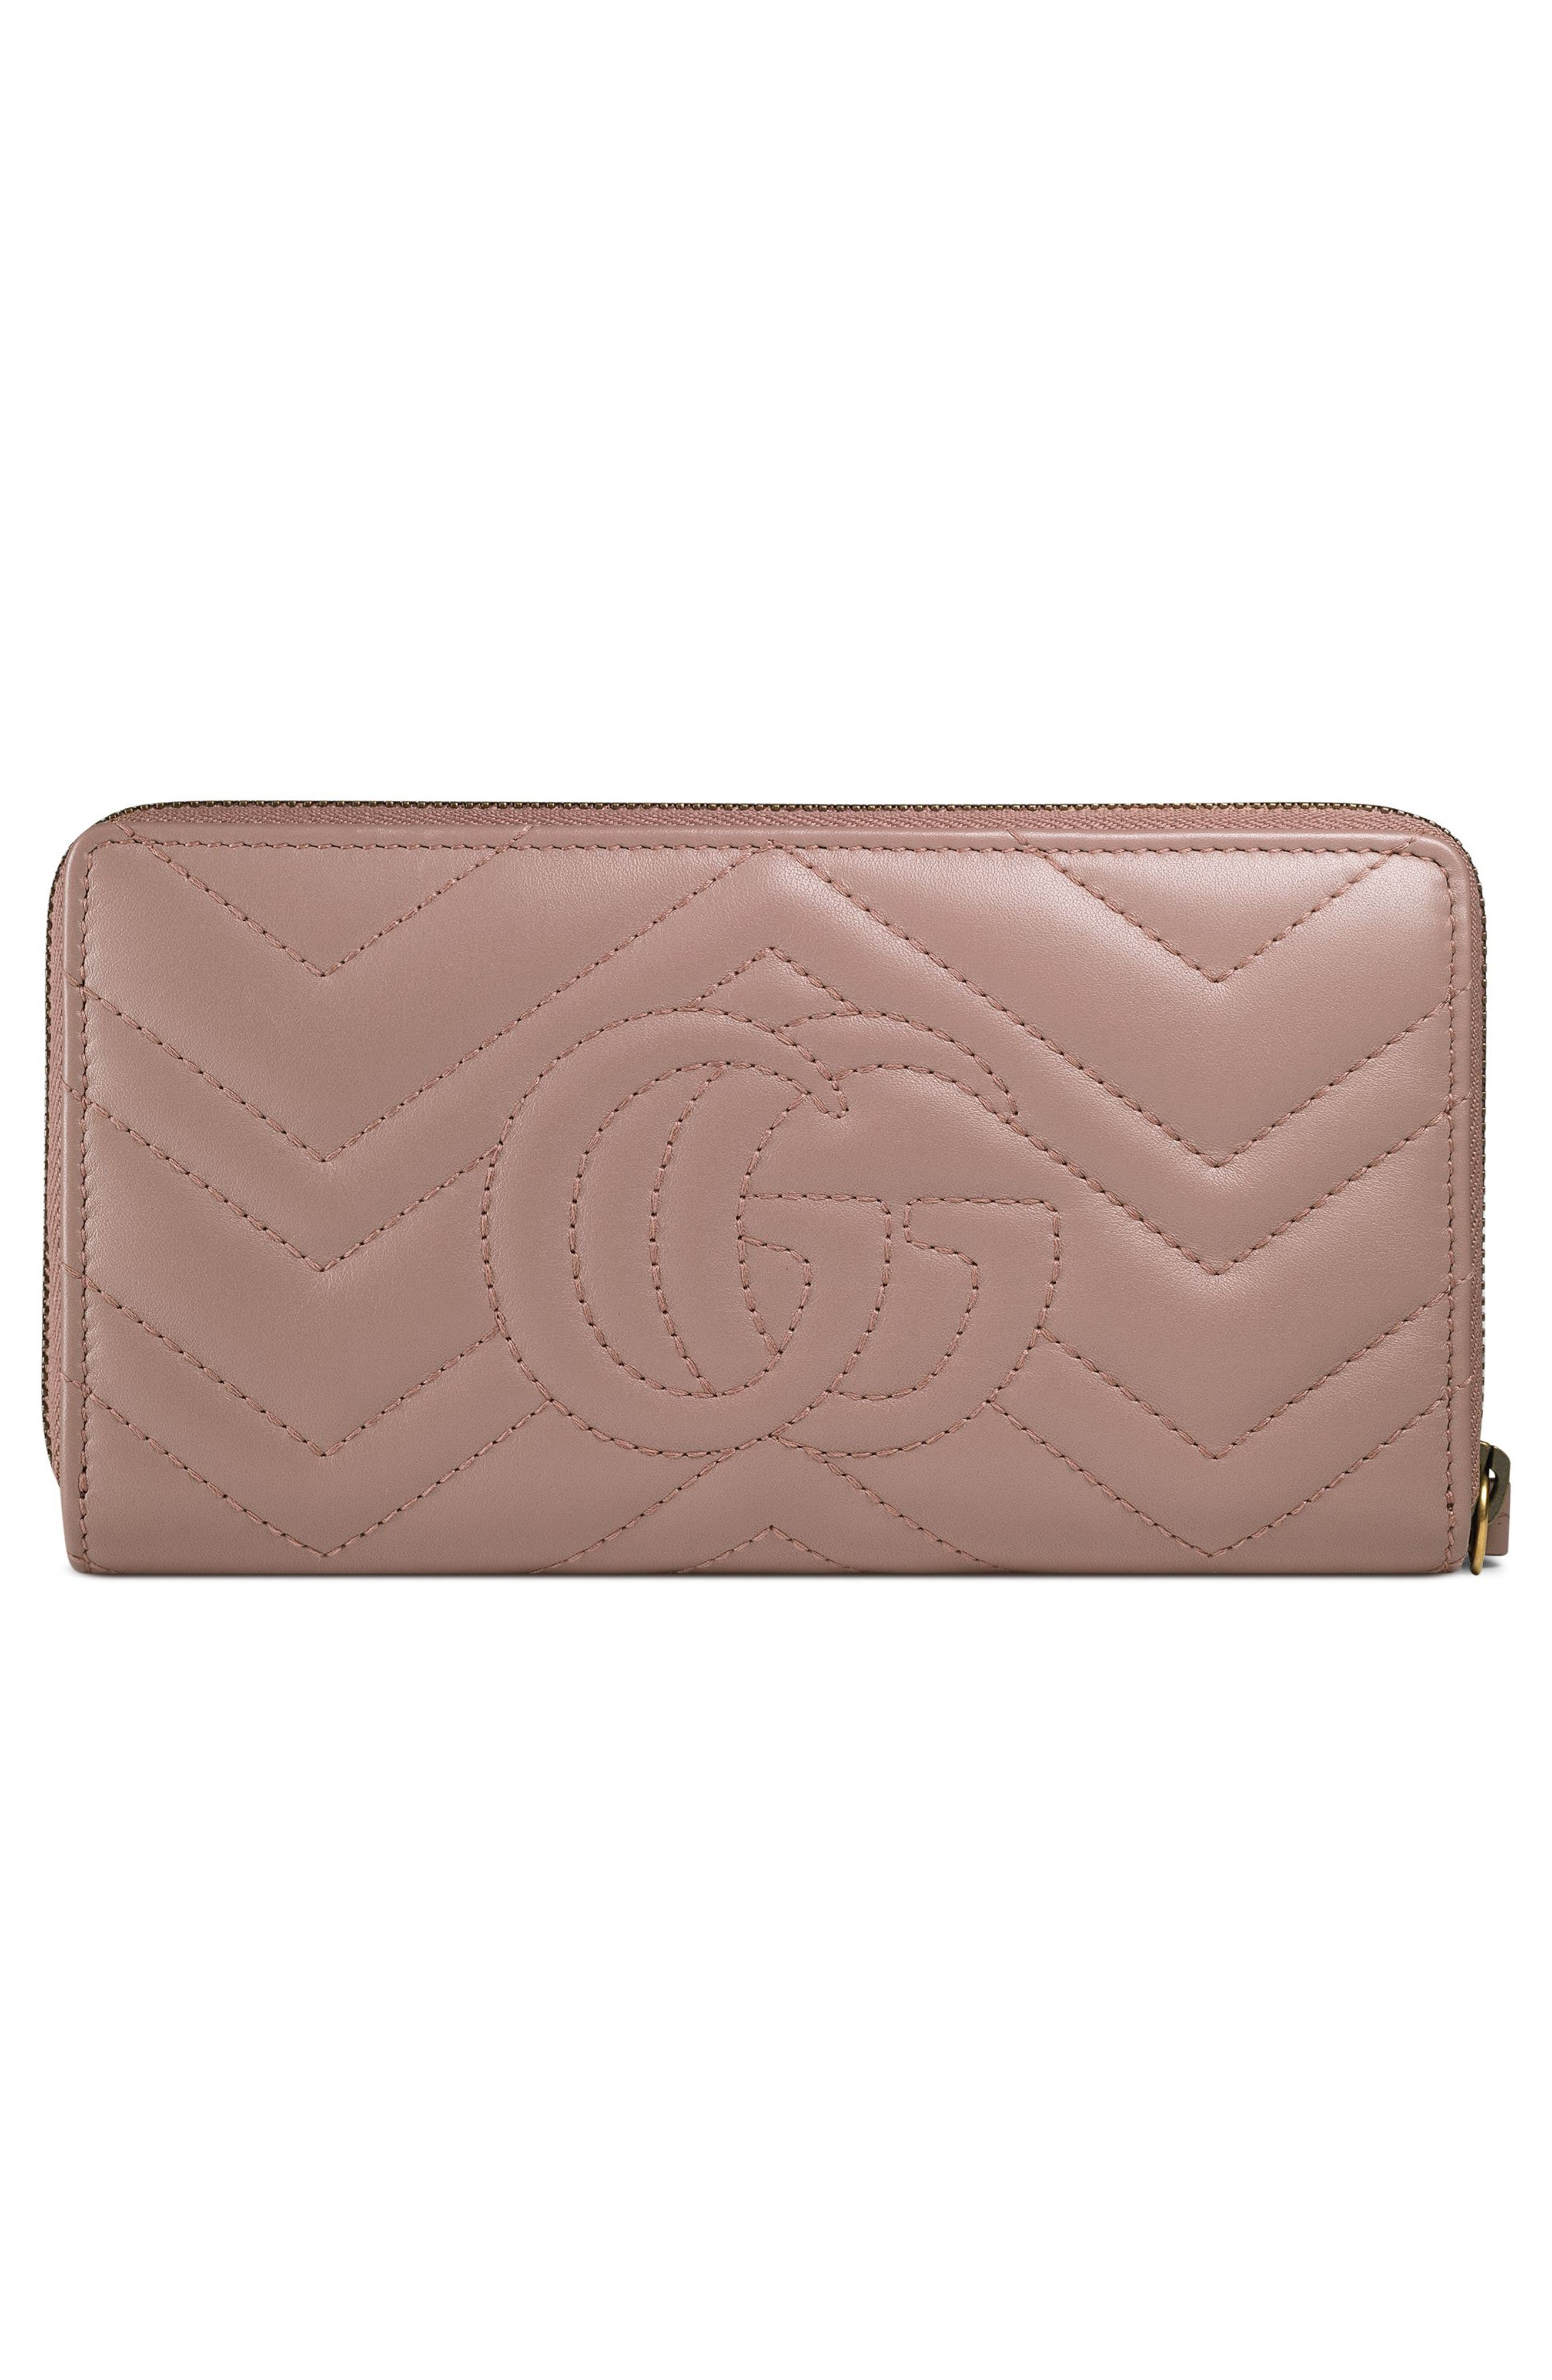 GUCCI, GG Marmont Matelassé Leather Zip-Around Wallet, Alternate thumbnail 4, color, PORCELAIN ROSE